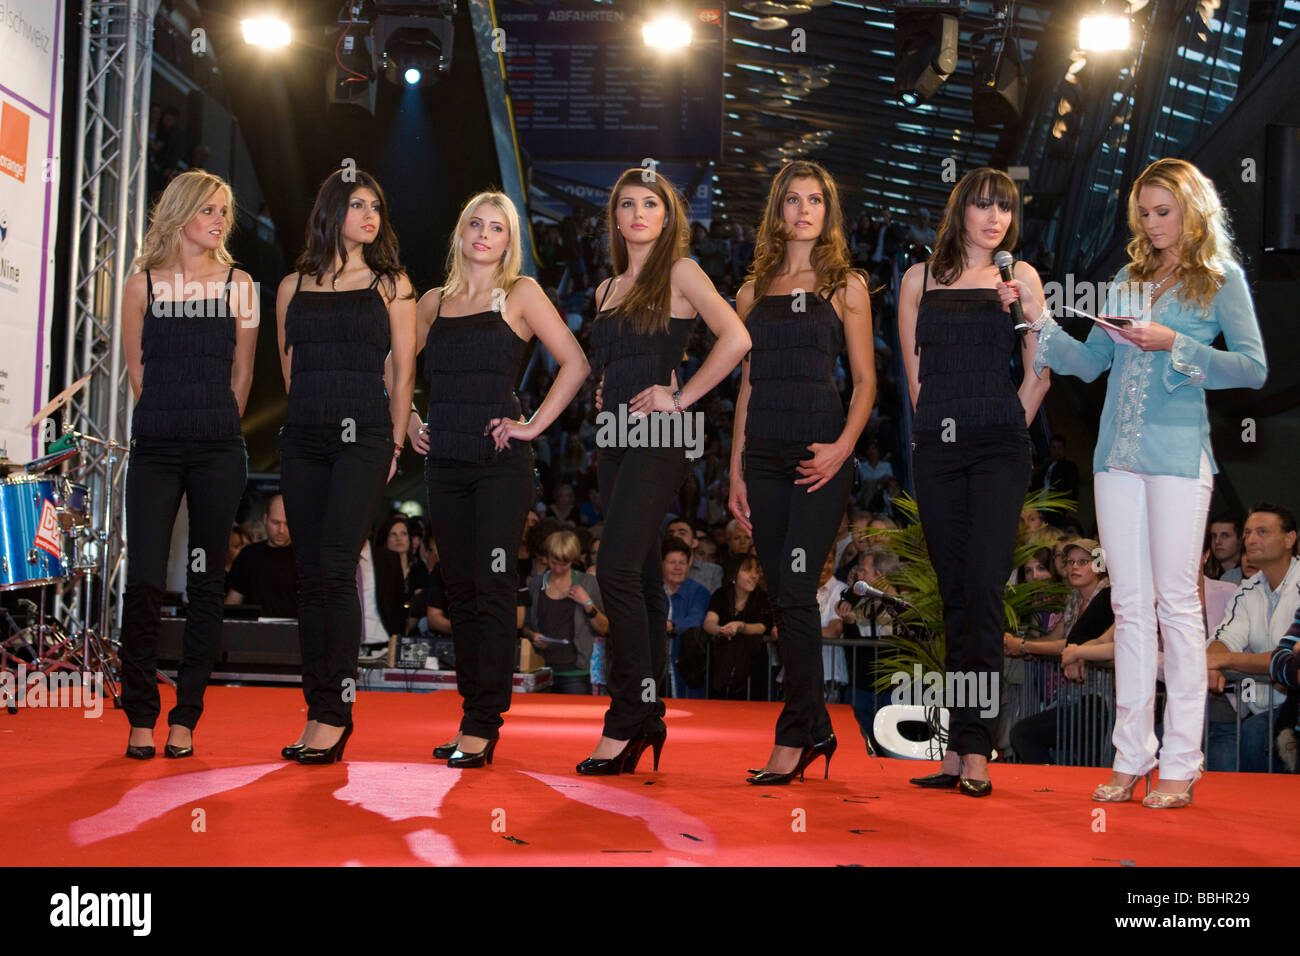 6 of the 12 finalists, from left, Nicole Mueller 23 from Rotheburg, 1st, Rana Alkhoory 21 from Rickenbach, 2nd, - Stock Image